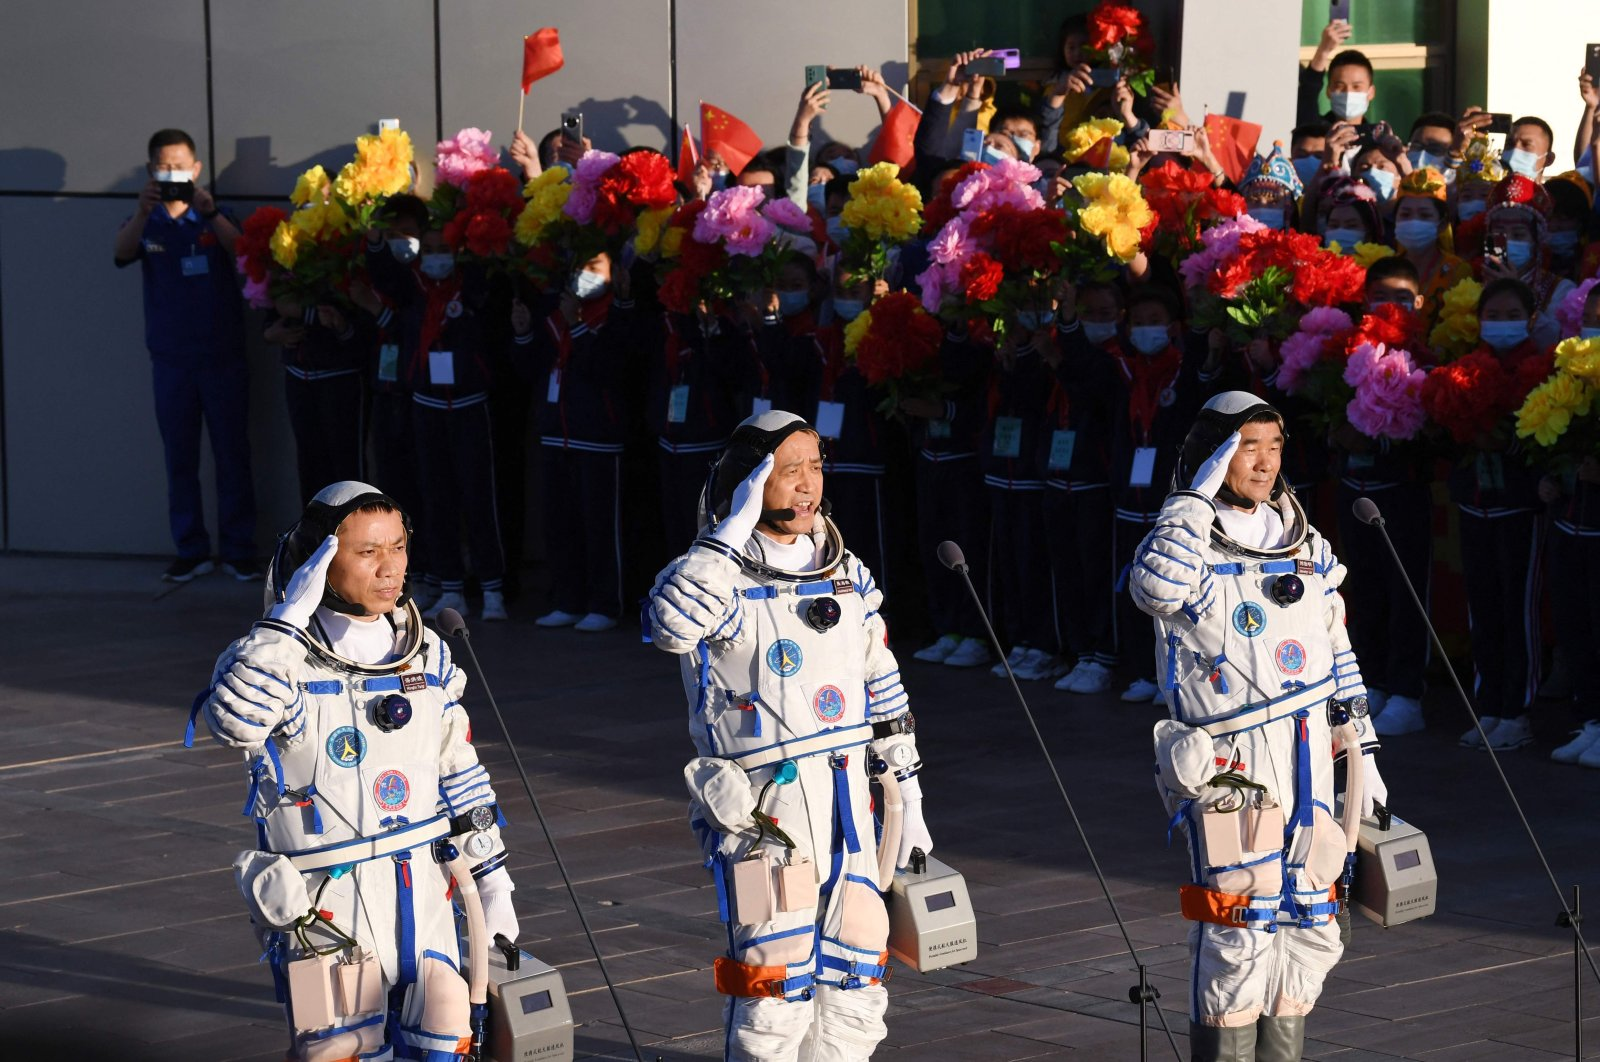 Astronauts Nie Haisheng (C), Liu Boming (R) and Tang Hongbo salute during a departure ceremony before boarding the Shenzhou-12 spacecraft on a Long March-2F carrier rocket at the Jiuquan Satellite Launch Center in the Gobi desert, northwest China, June 17, 2021. (AFP Photo)